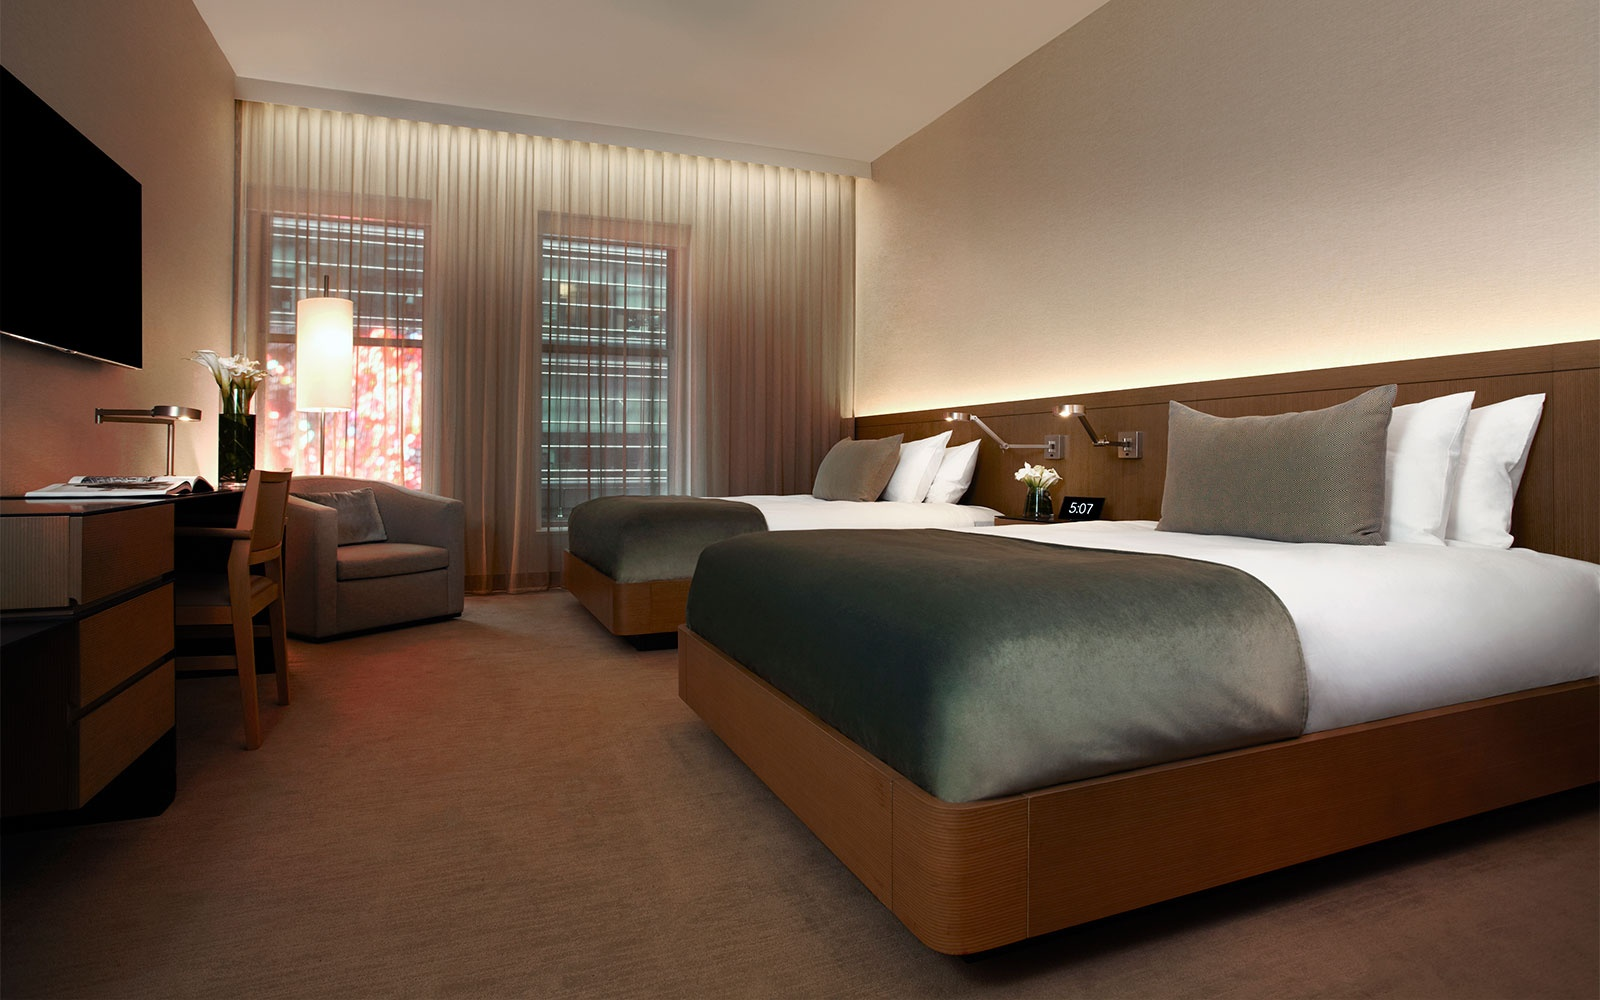 There Are Some Amazing New Hotels Cropping Up In Midtown